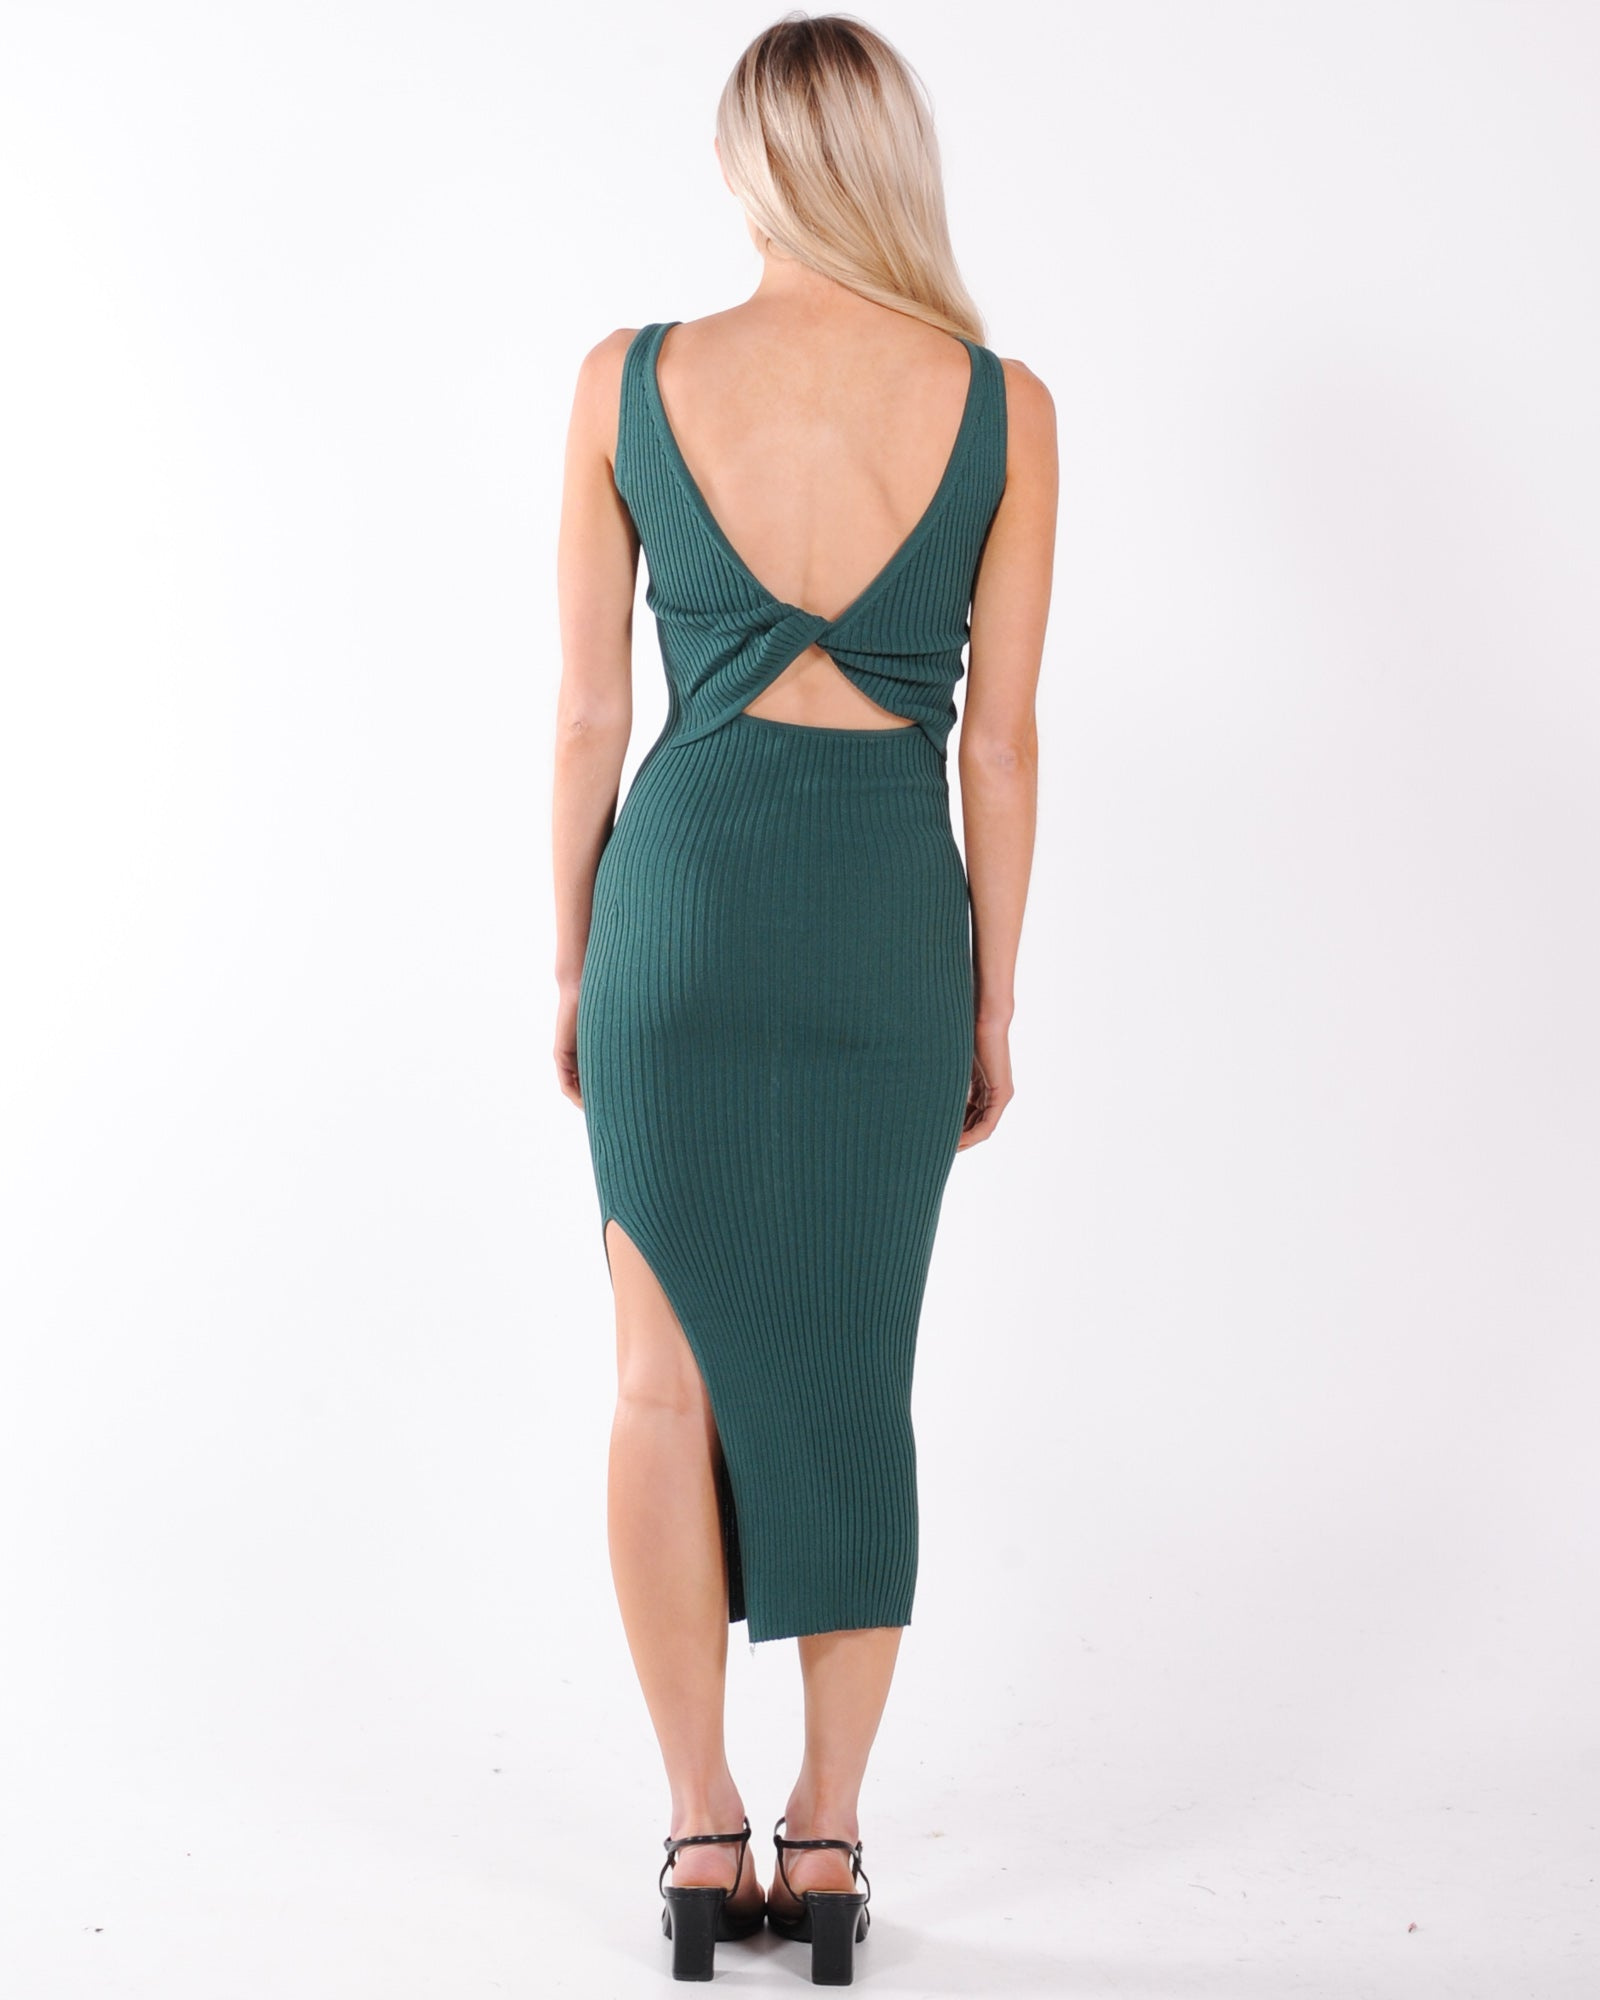 Remi Knit Midi Dress - Green